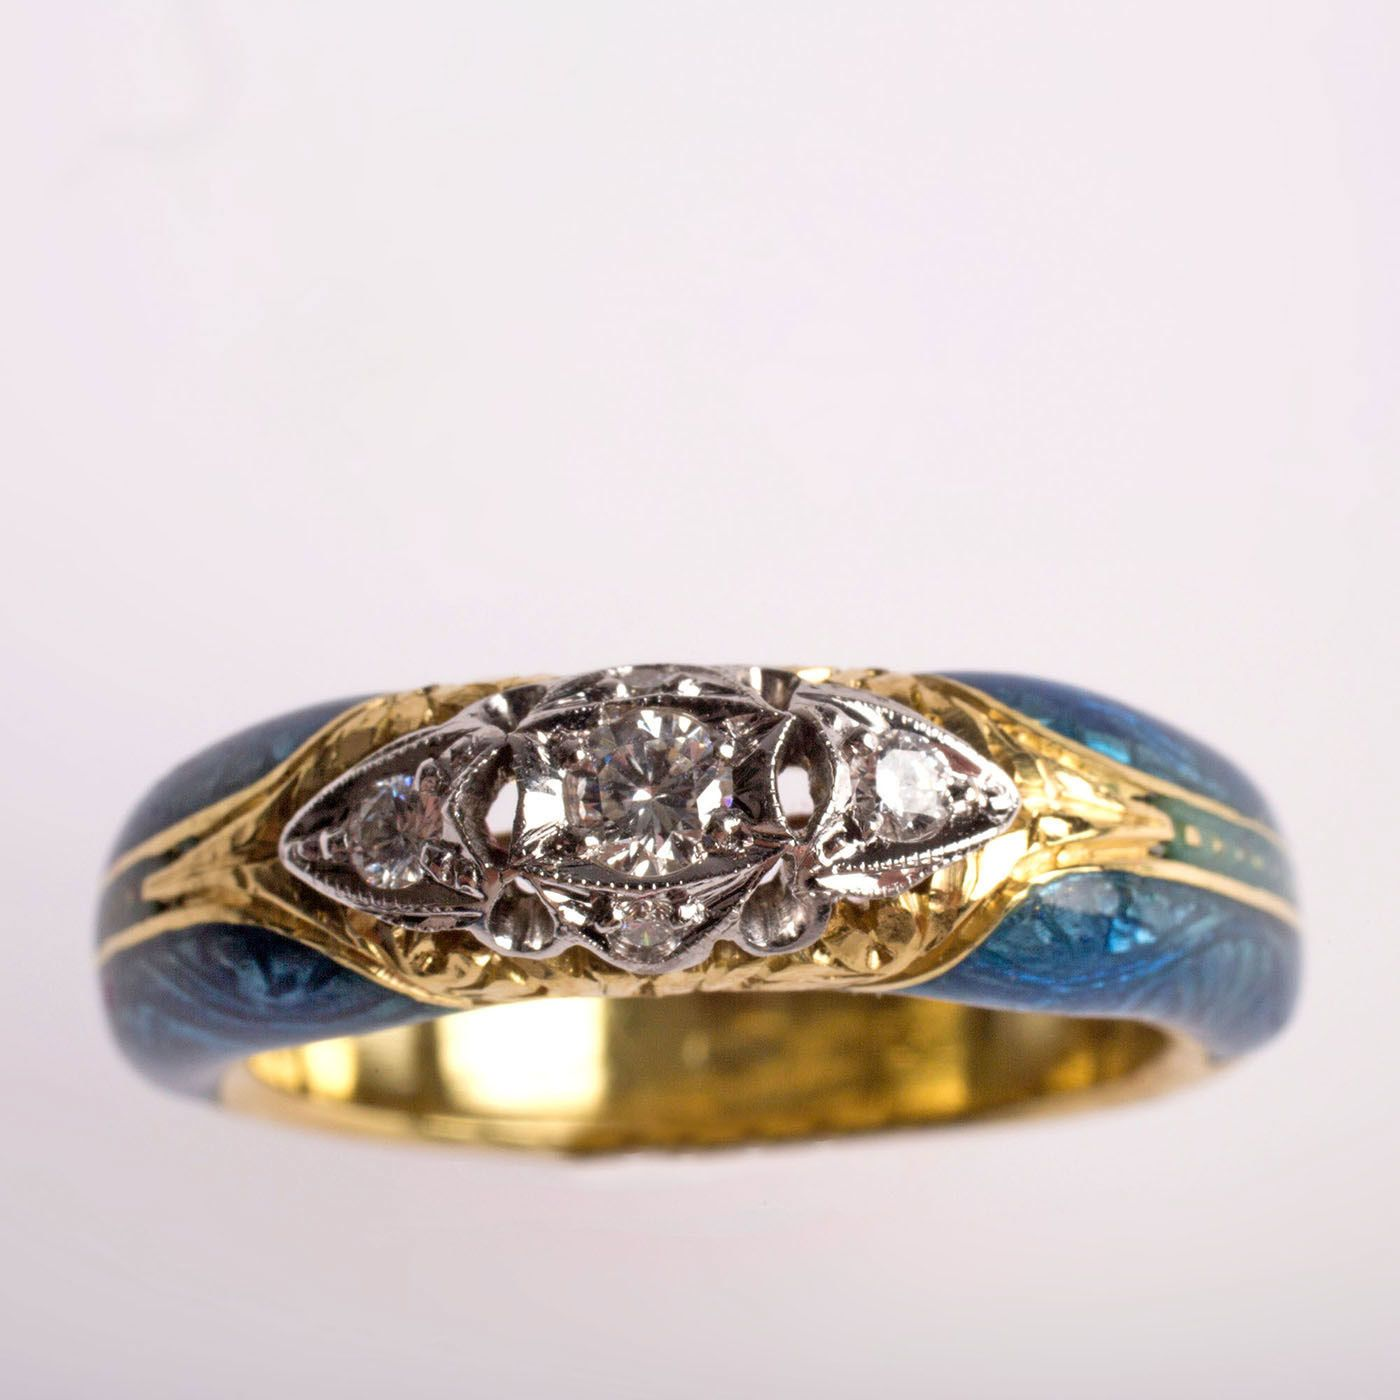 Venezia Blu Ring - Shop rings from Italy's Best Artisans: fine jewelry handcrafted in Italy - Fine Jewelry from Italy's Best Artisans - Artemest